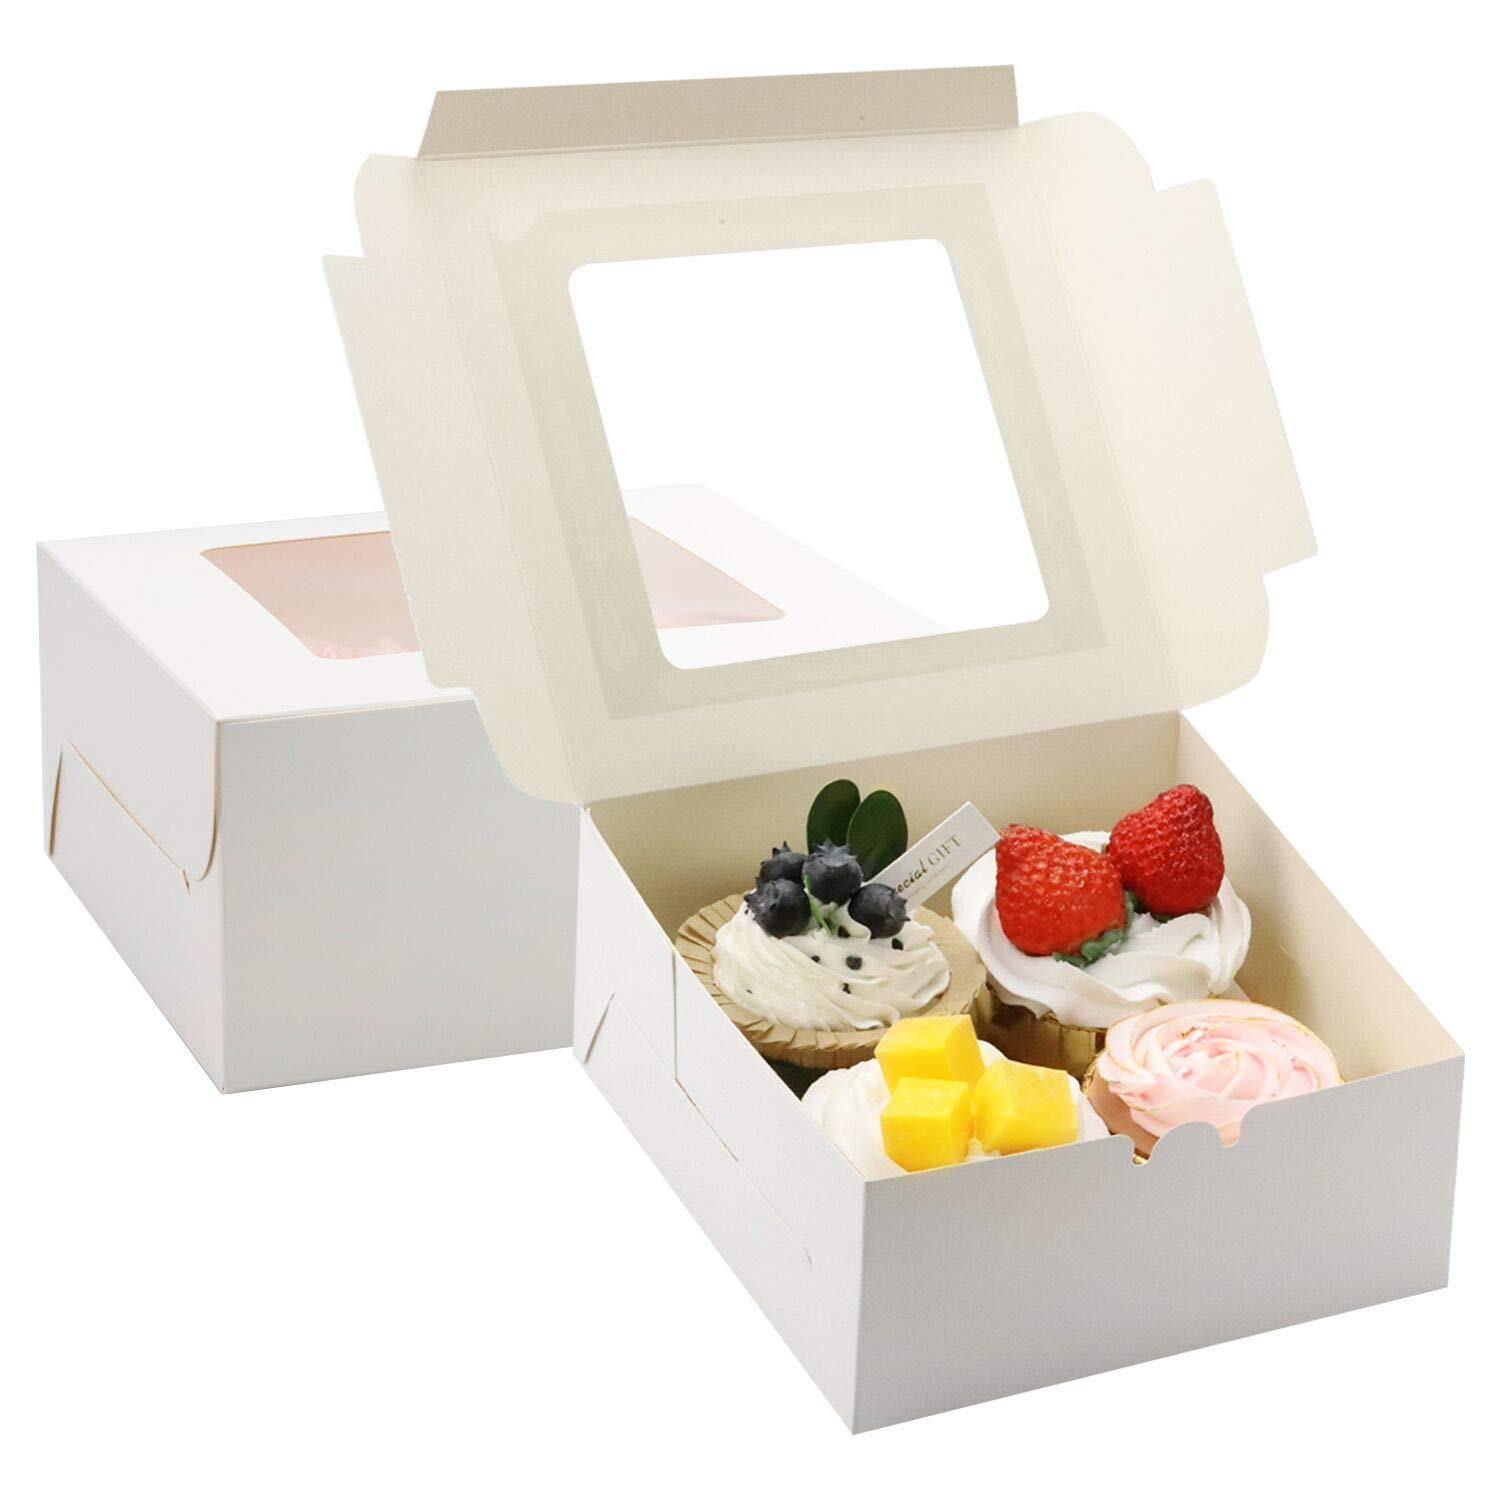 JOERSH Bakery Cupcake Boxes 20 Packs, White Cupcake Carrier, Food Grade Kraft Bakery Boxes with Window and Inserts to Fit 4 Cupcakes or Muffins(6''x6''x3